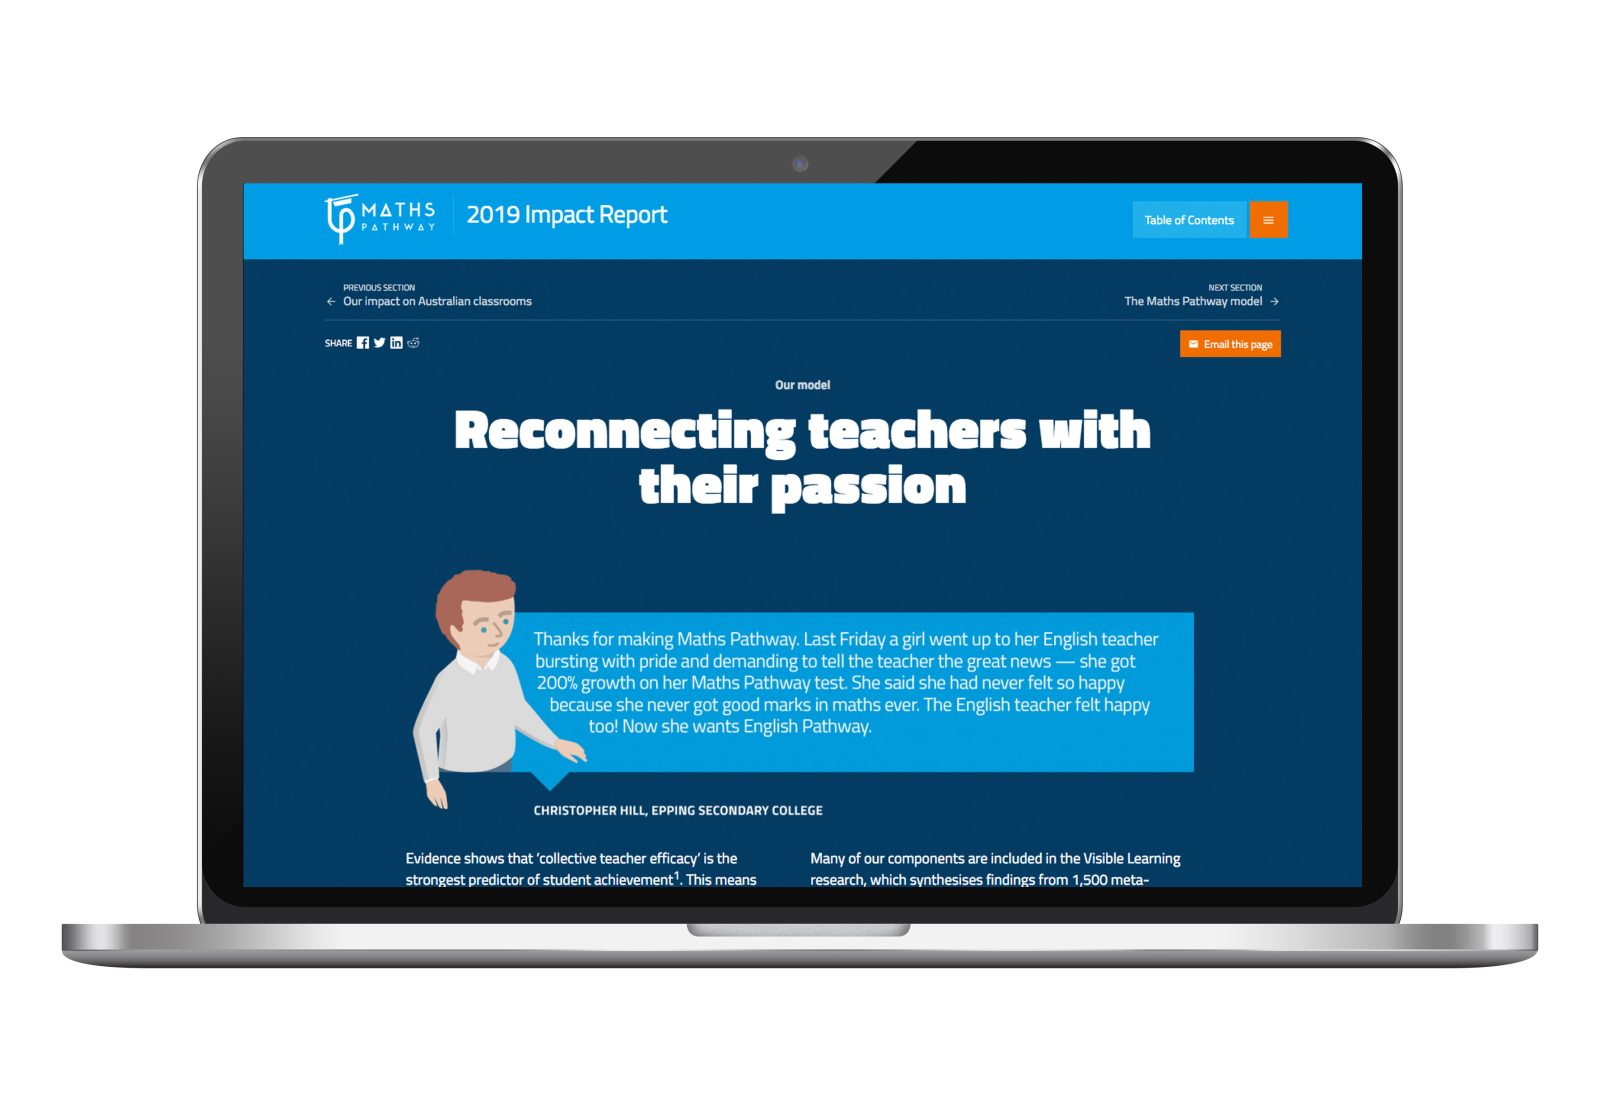 Laptop screen with Maths Pathway online annual report, reconnecting teacher page